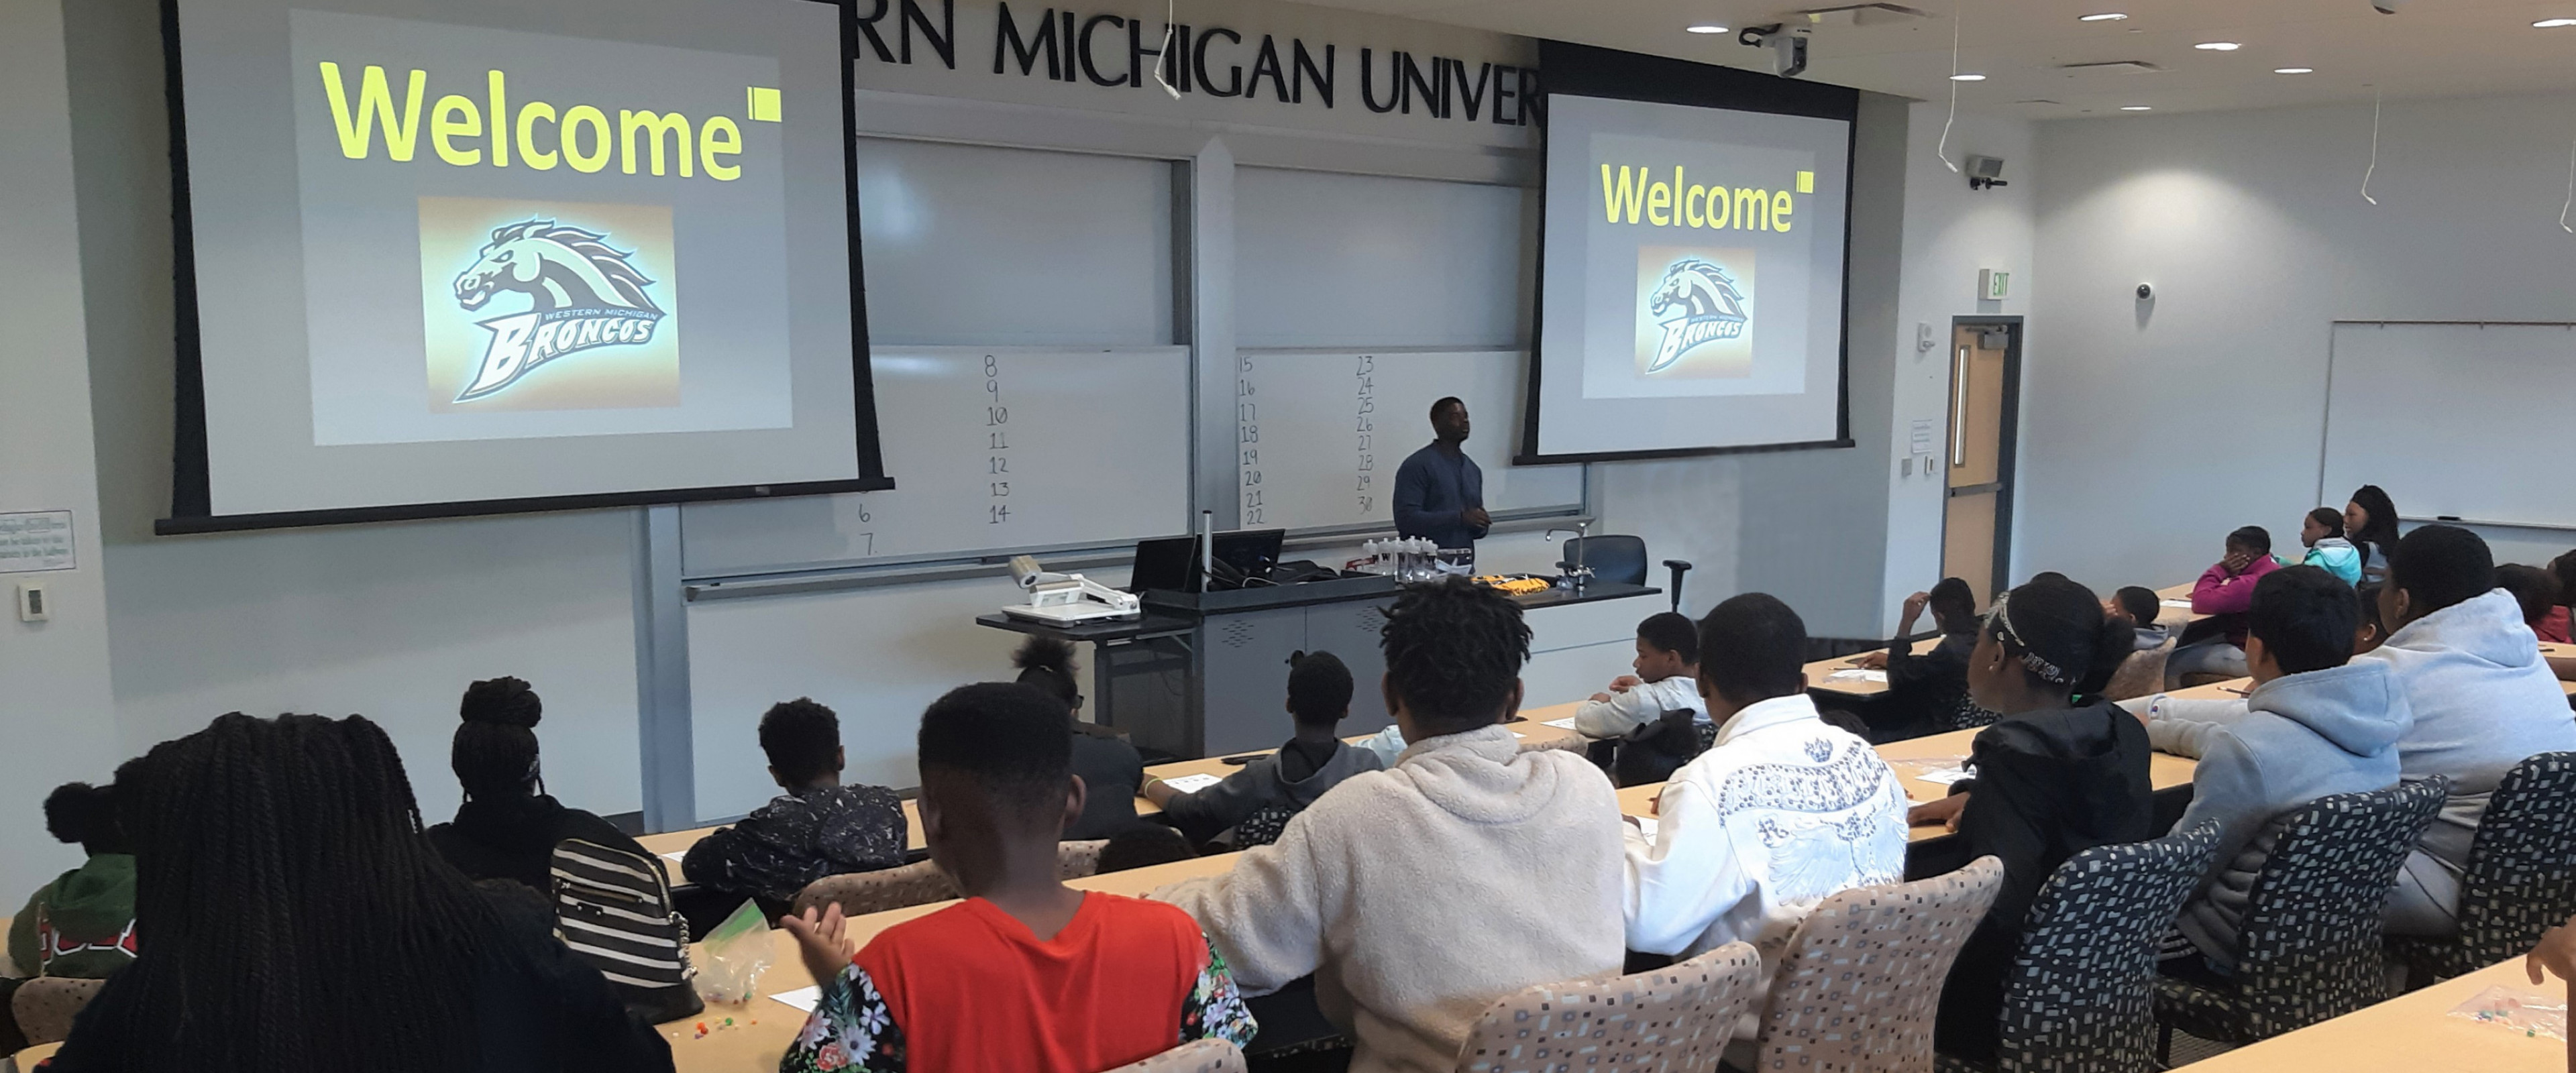 Students watching a WMU admissions presentation